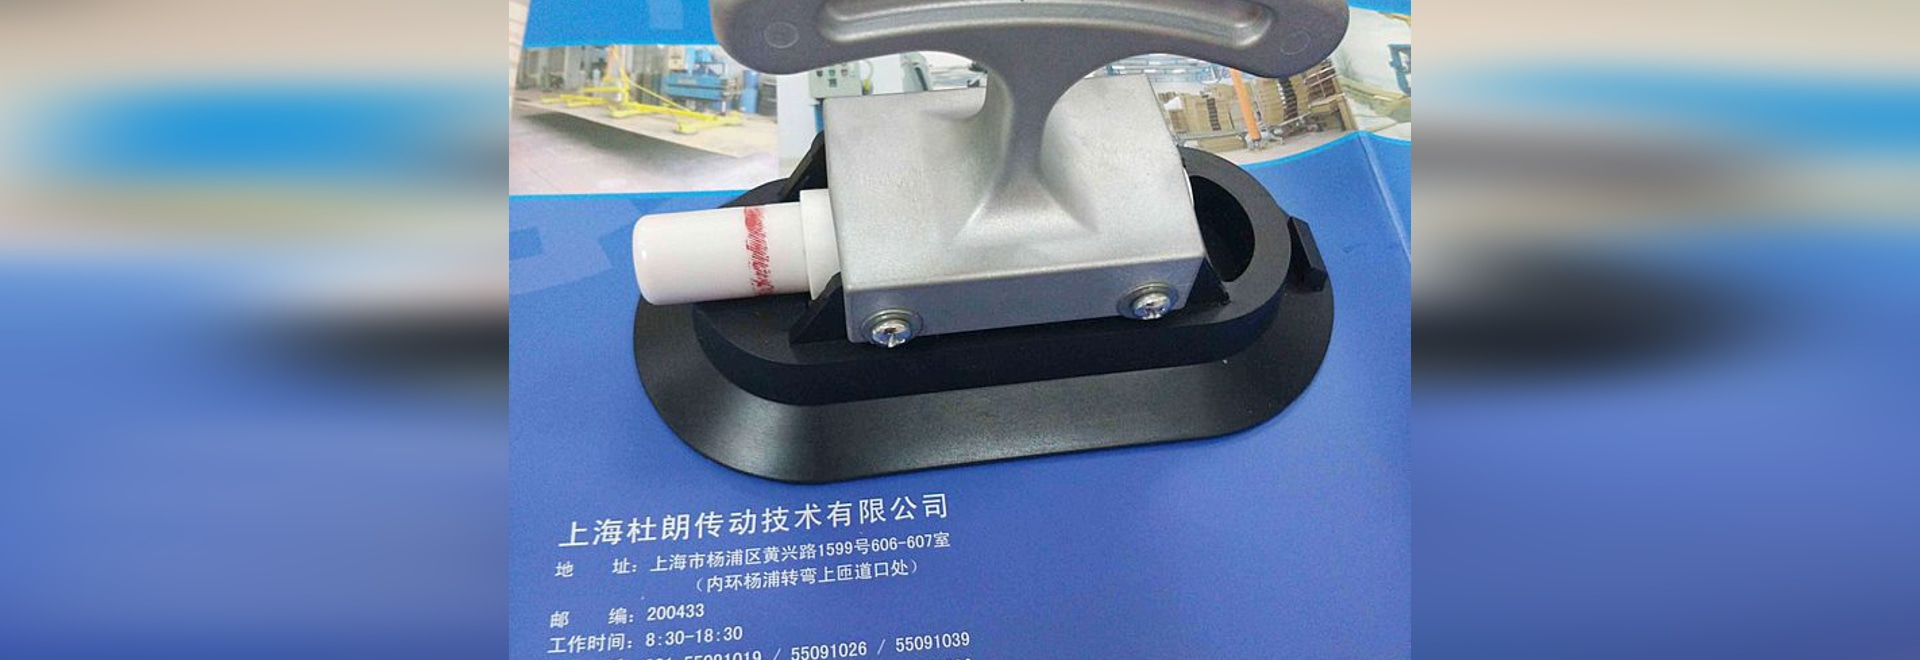 Oval Hand Pump Suction Cup